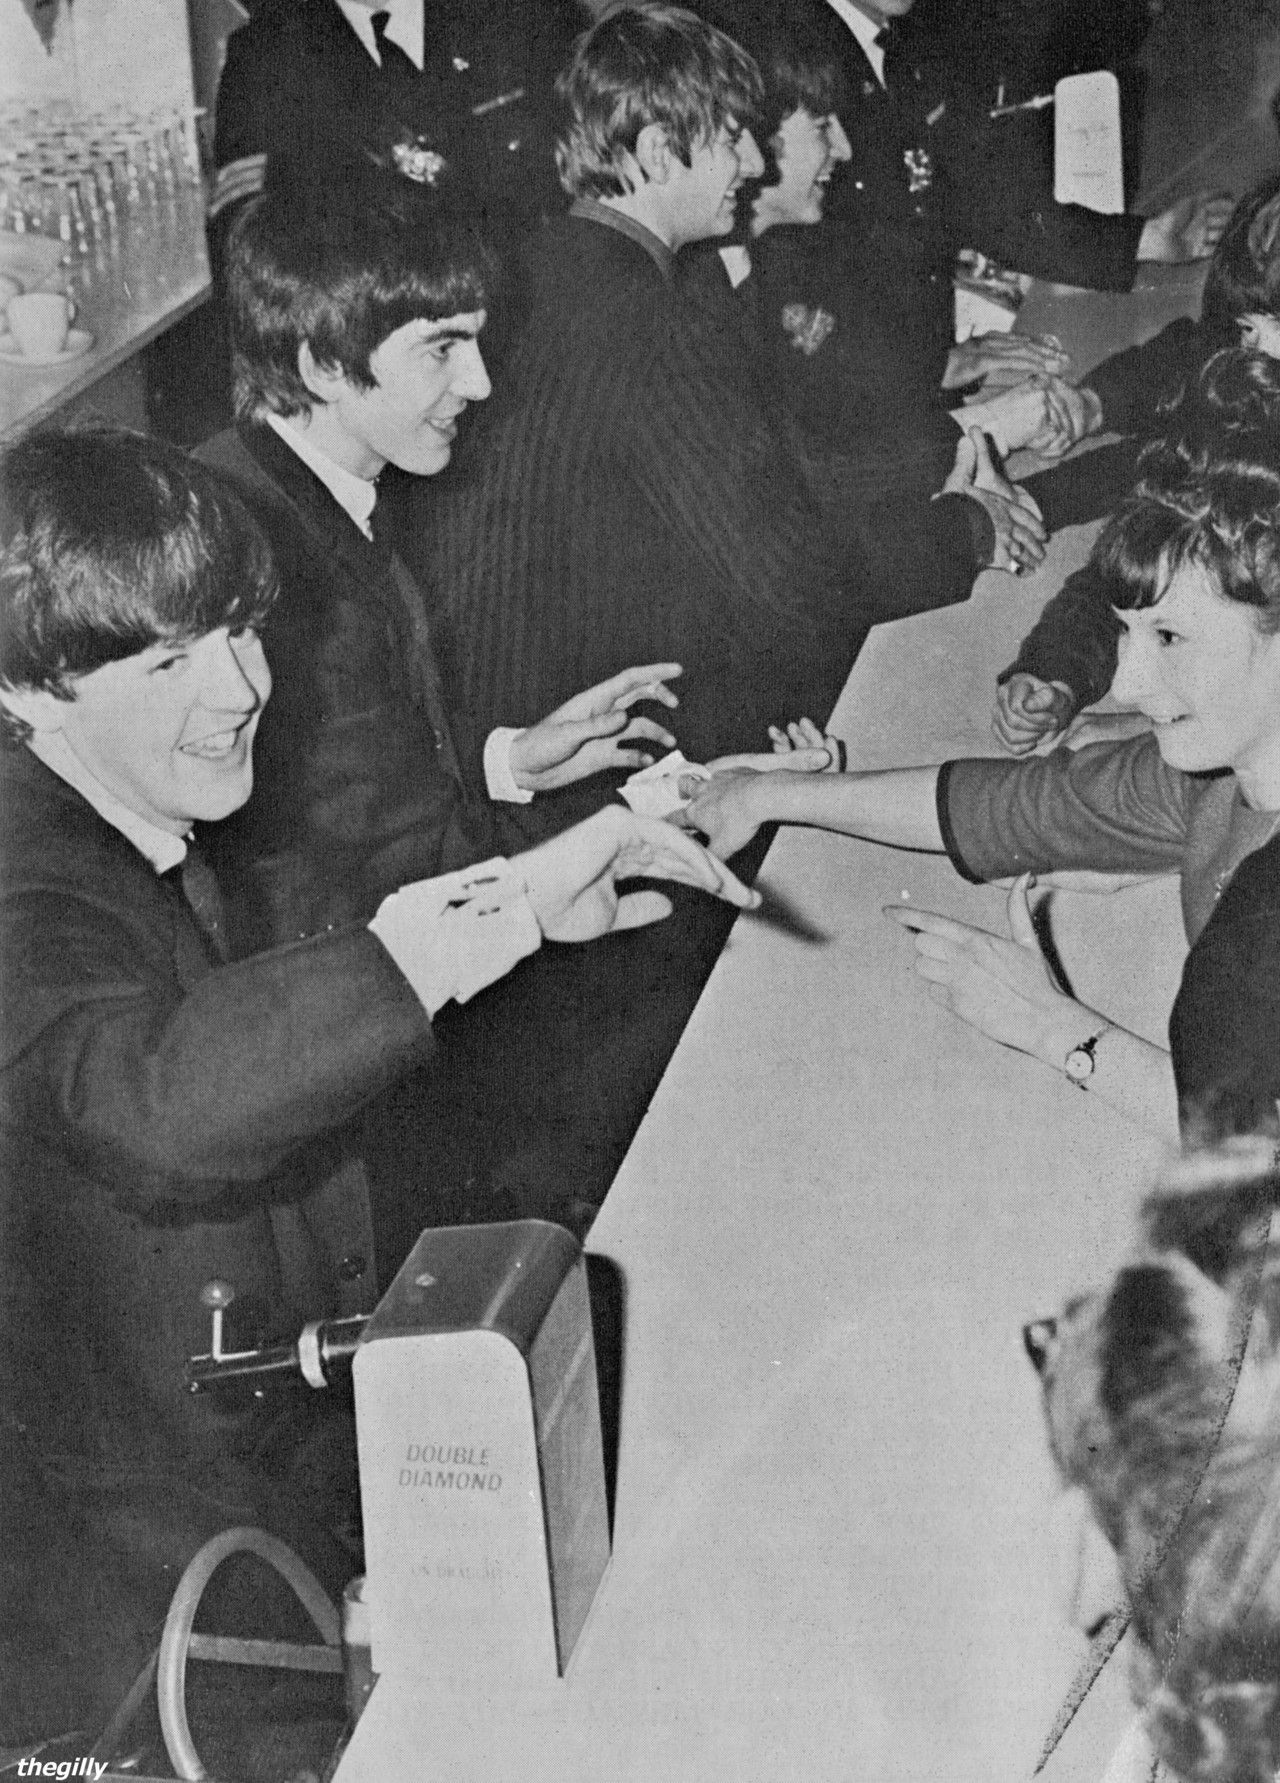 The Beatles shake hands with fans at a meet and greet after a special fanclub performance at the Wimbledon Palais on 14 December 1963. Scan from Beatles Book Monthly No. 7.